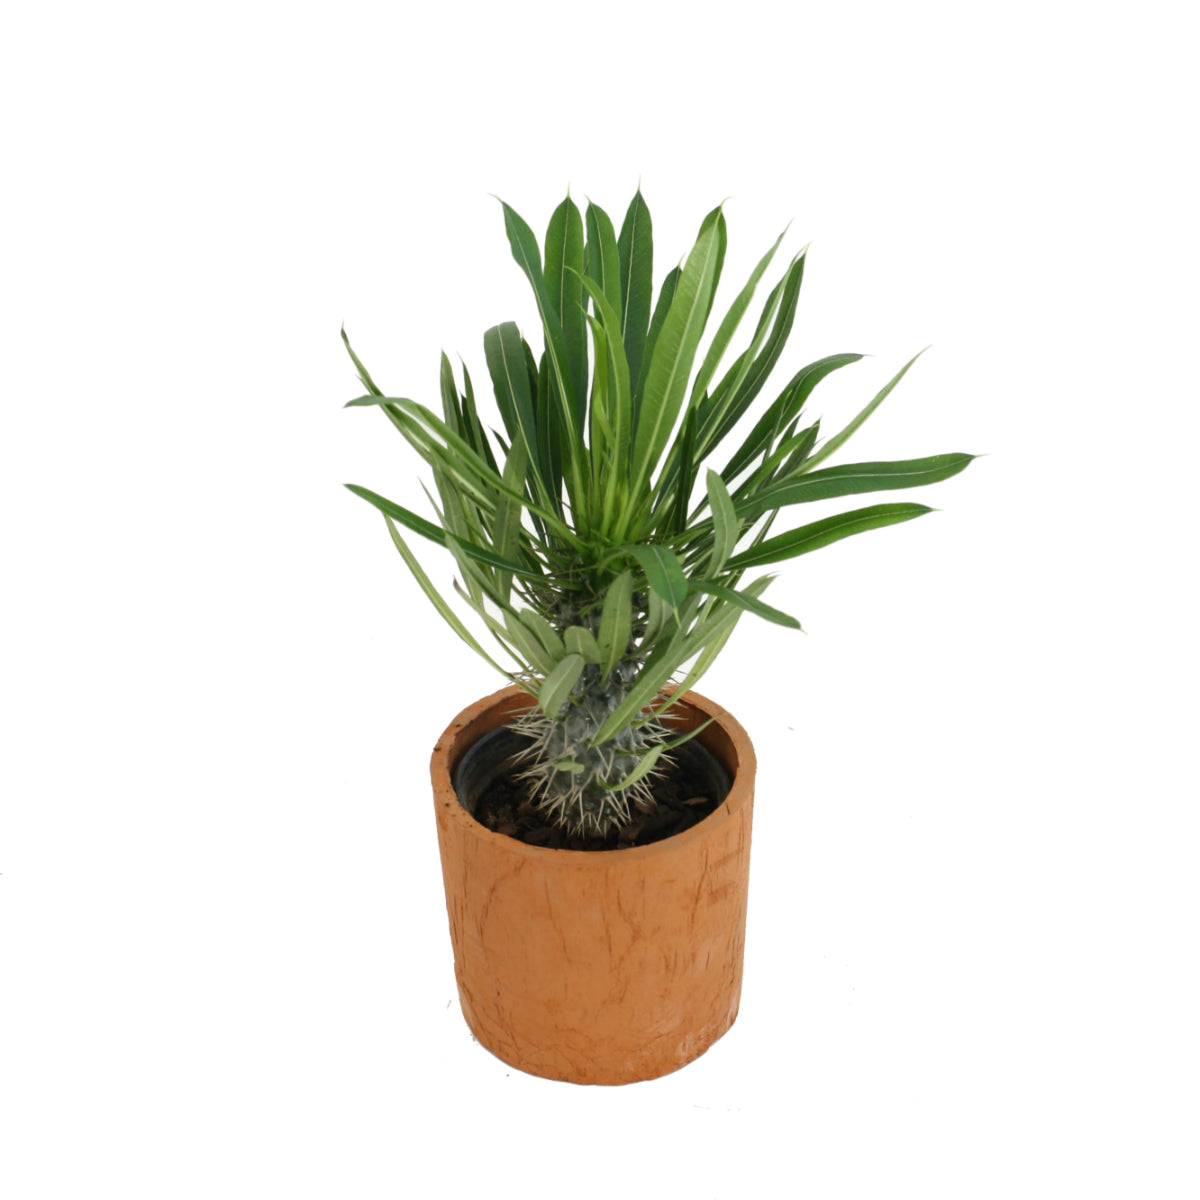 Pachypodium in Terracotta